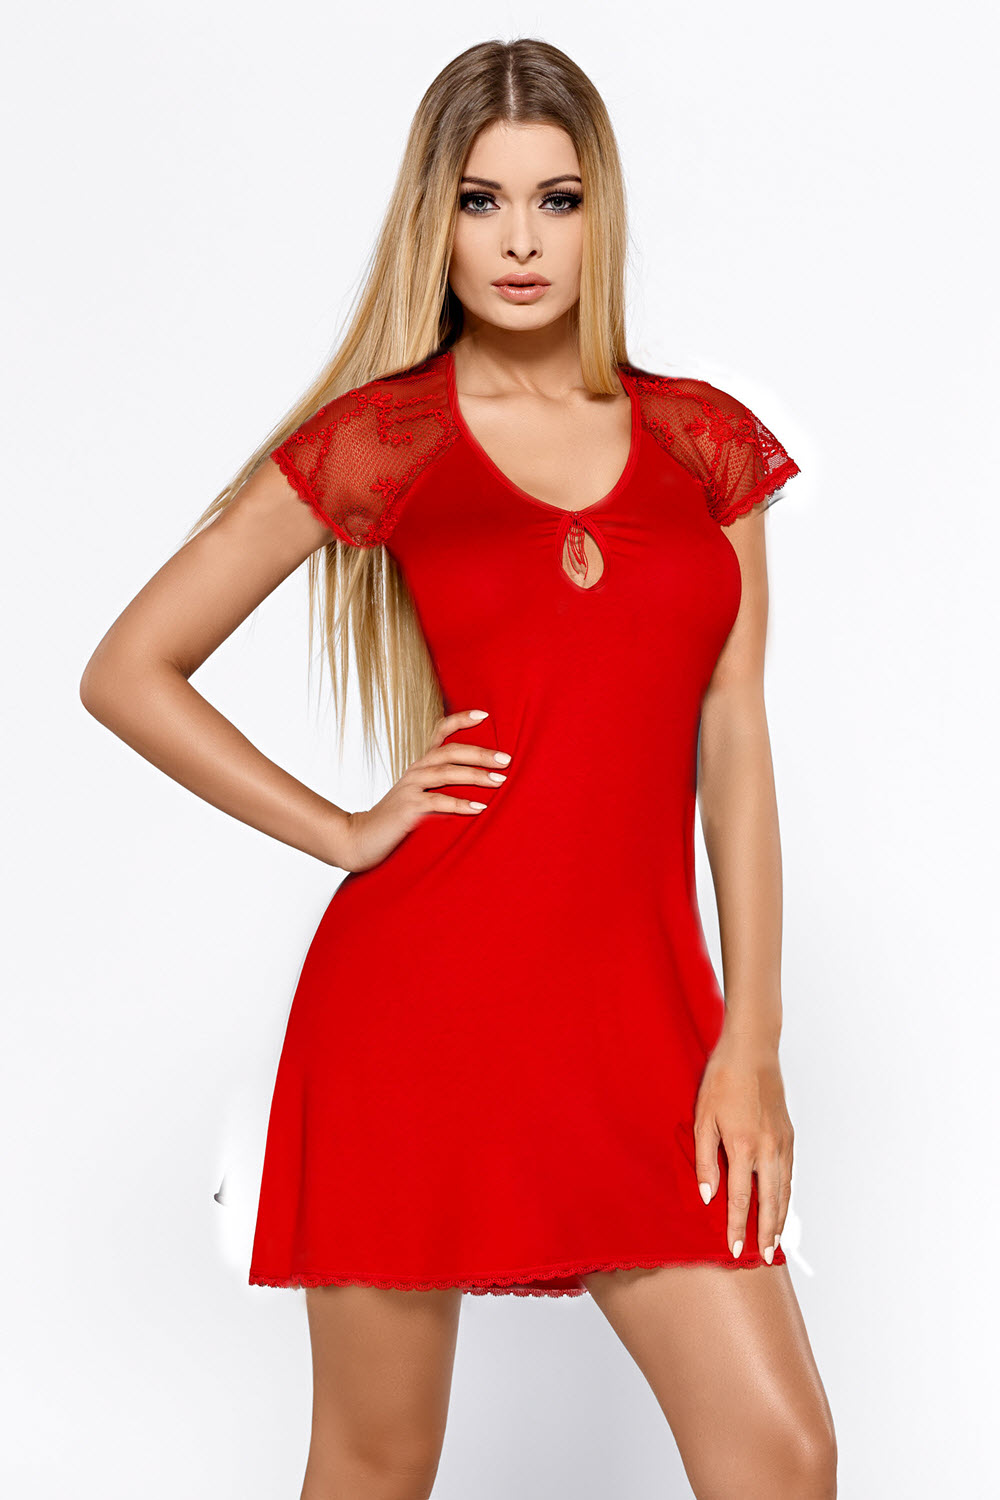 Image of Nachtkleid, HILLARY, Rot-L